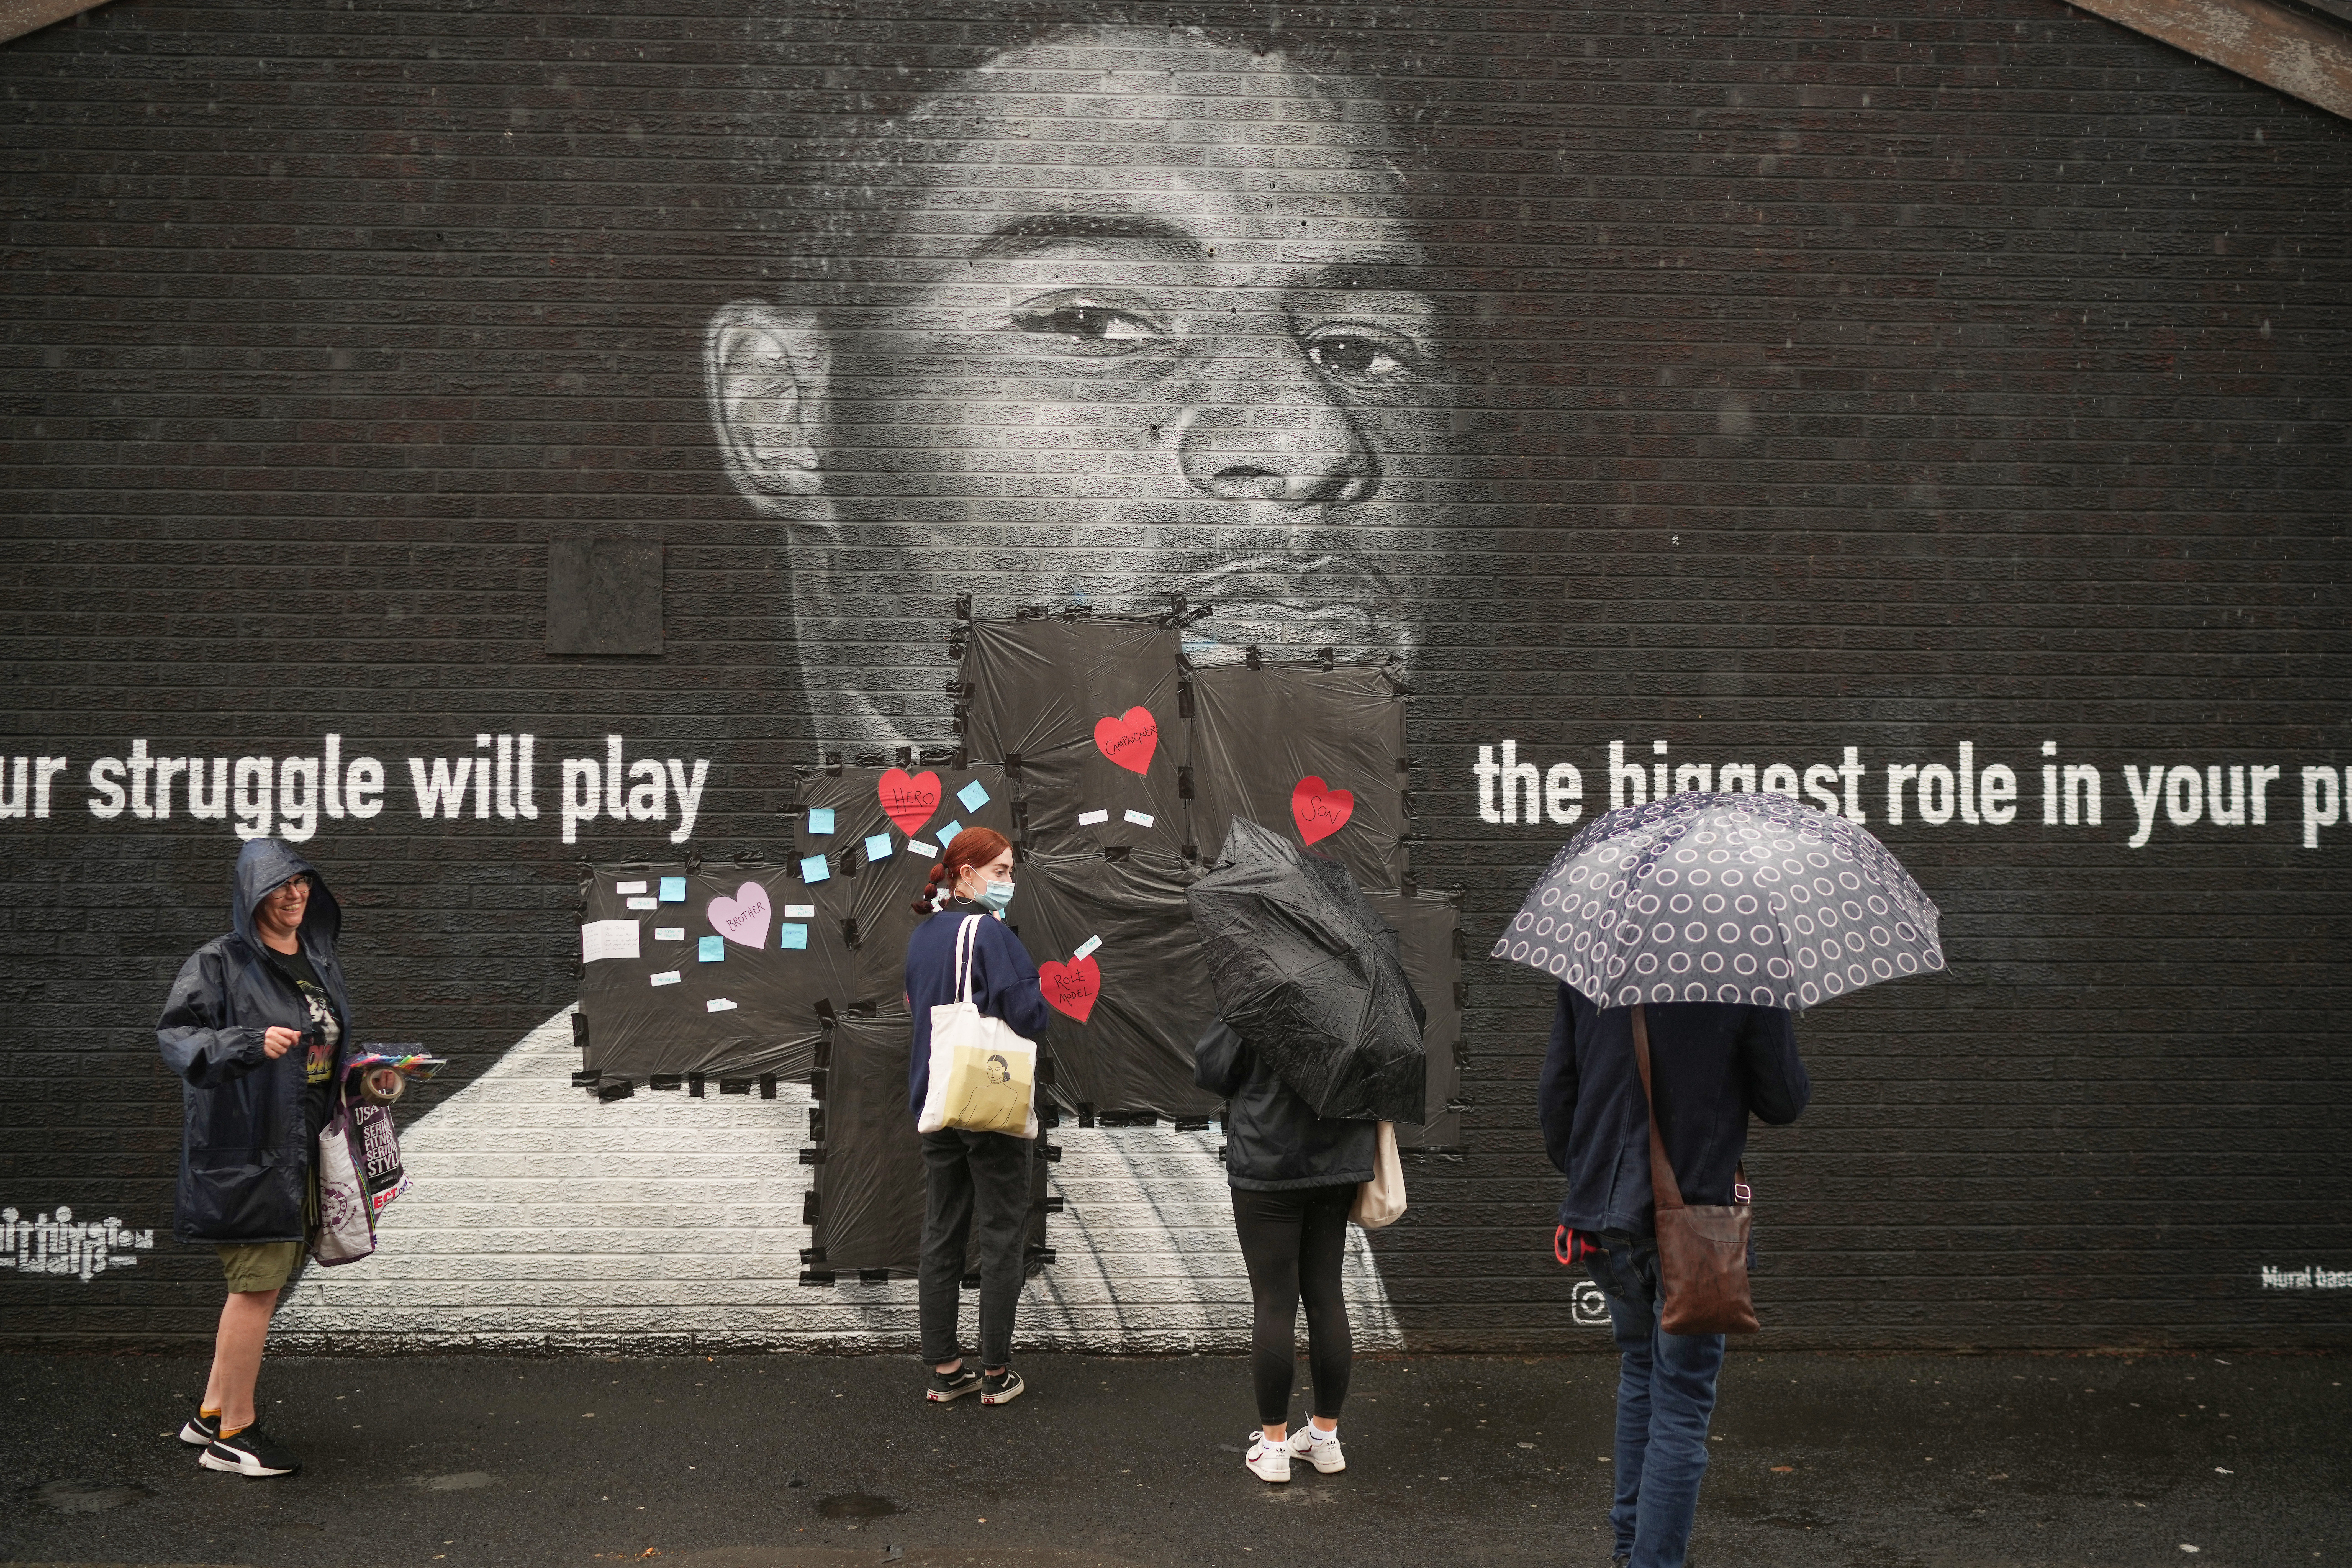 <p>MANCHESTER, ENGLAND - JULY 12: Local residents put messages of support on the plastic that covers offensive graffiti on the vandalised mural of Manchester United striker and England player Marcus Rashford on the wall of a cafe on Copson Street, Withington on July 12, 2021 in Manchester, England. Rashford and other Black players on England's national football team have been the target of racist abuse, largely on social media, after the team's loss to Italy in the UEFA European Football Championship last night. England manager Gareth Southgate, Prime Minister Boris Johnson, and the Football Association have issued statements condemning the abuse. (Photo by Christopher Furlong/Getty Images)</p>